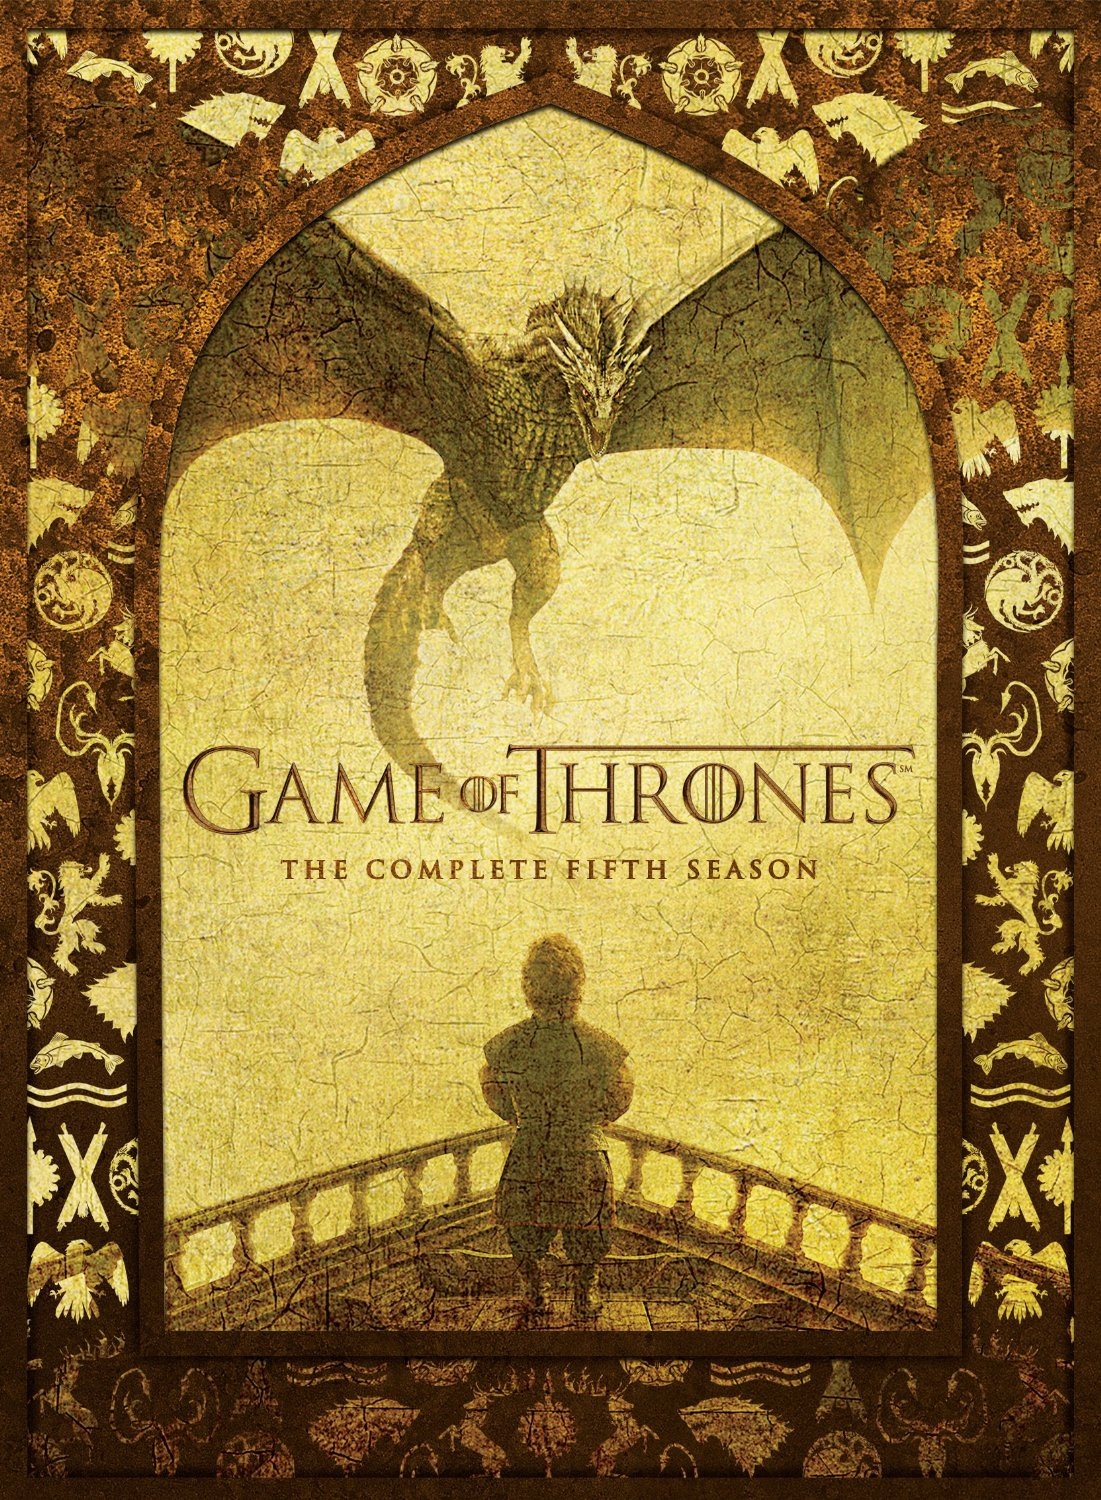 Game Of Thrones Season 5 Blu-ray review